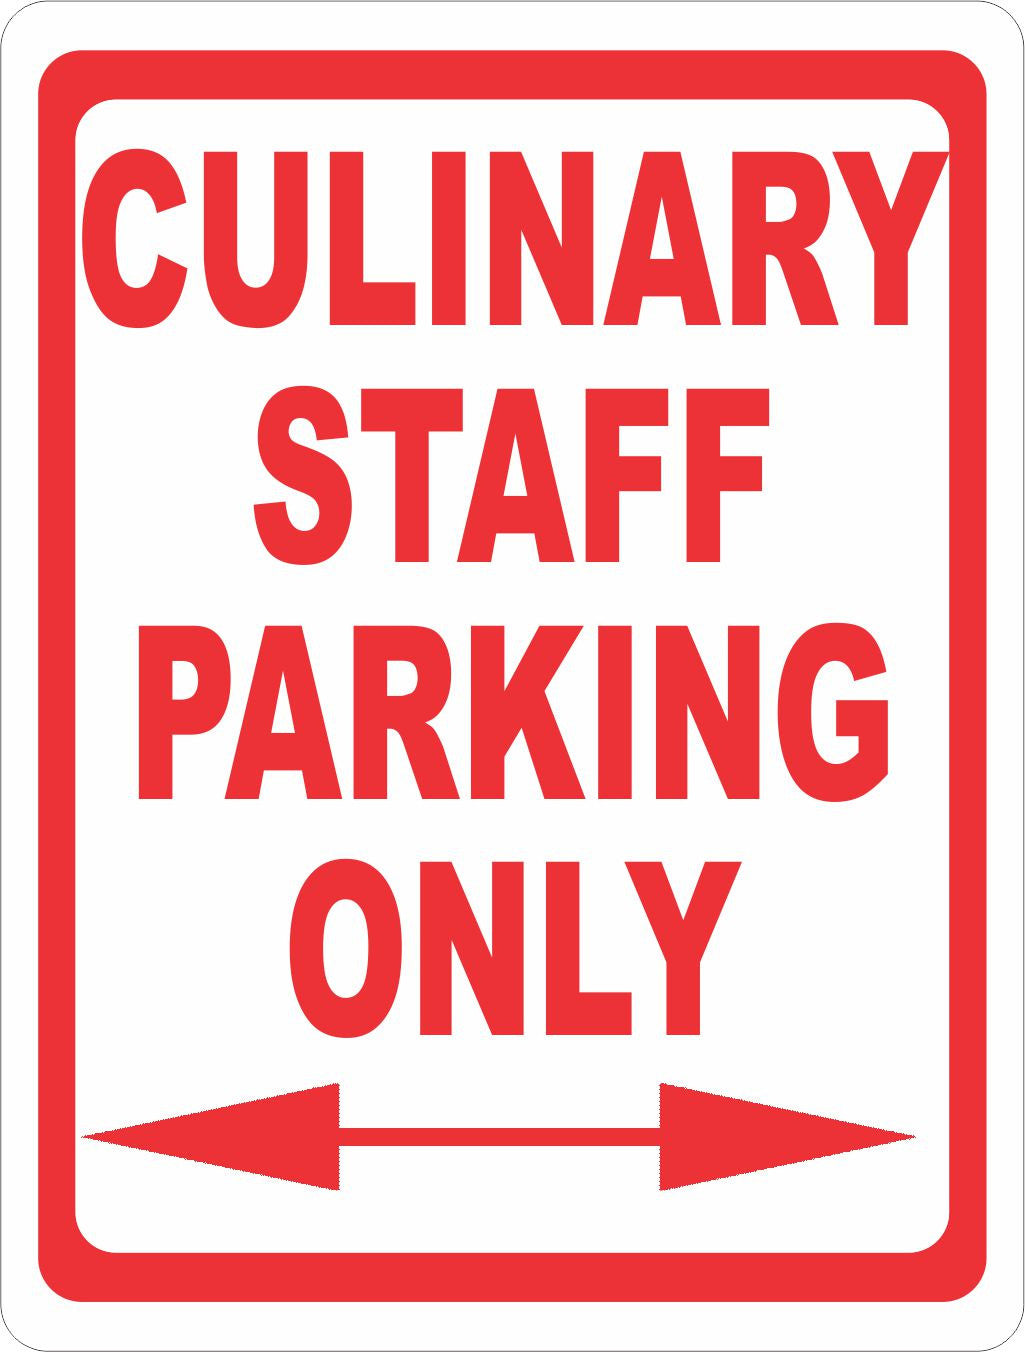 Culinary Staff Parking Only Sign - Signs & Decals by SalaGraphics